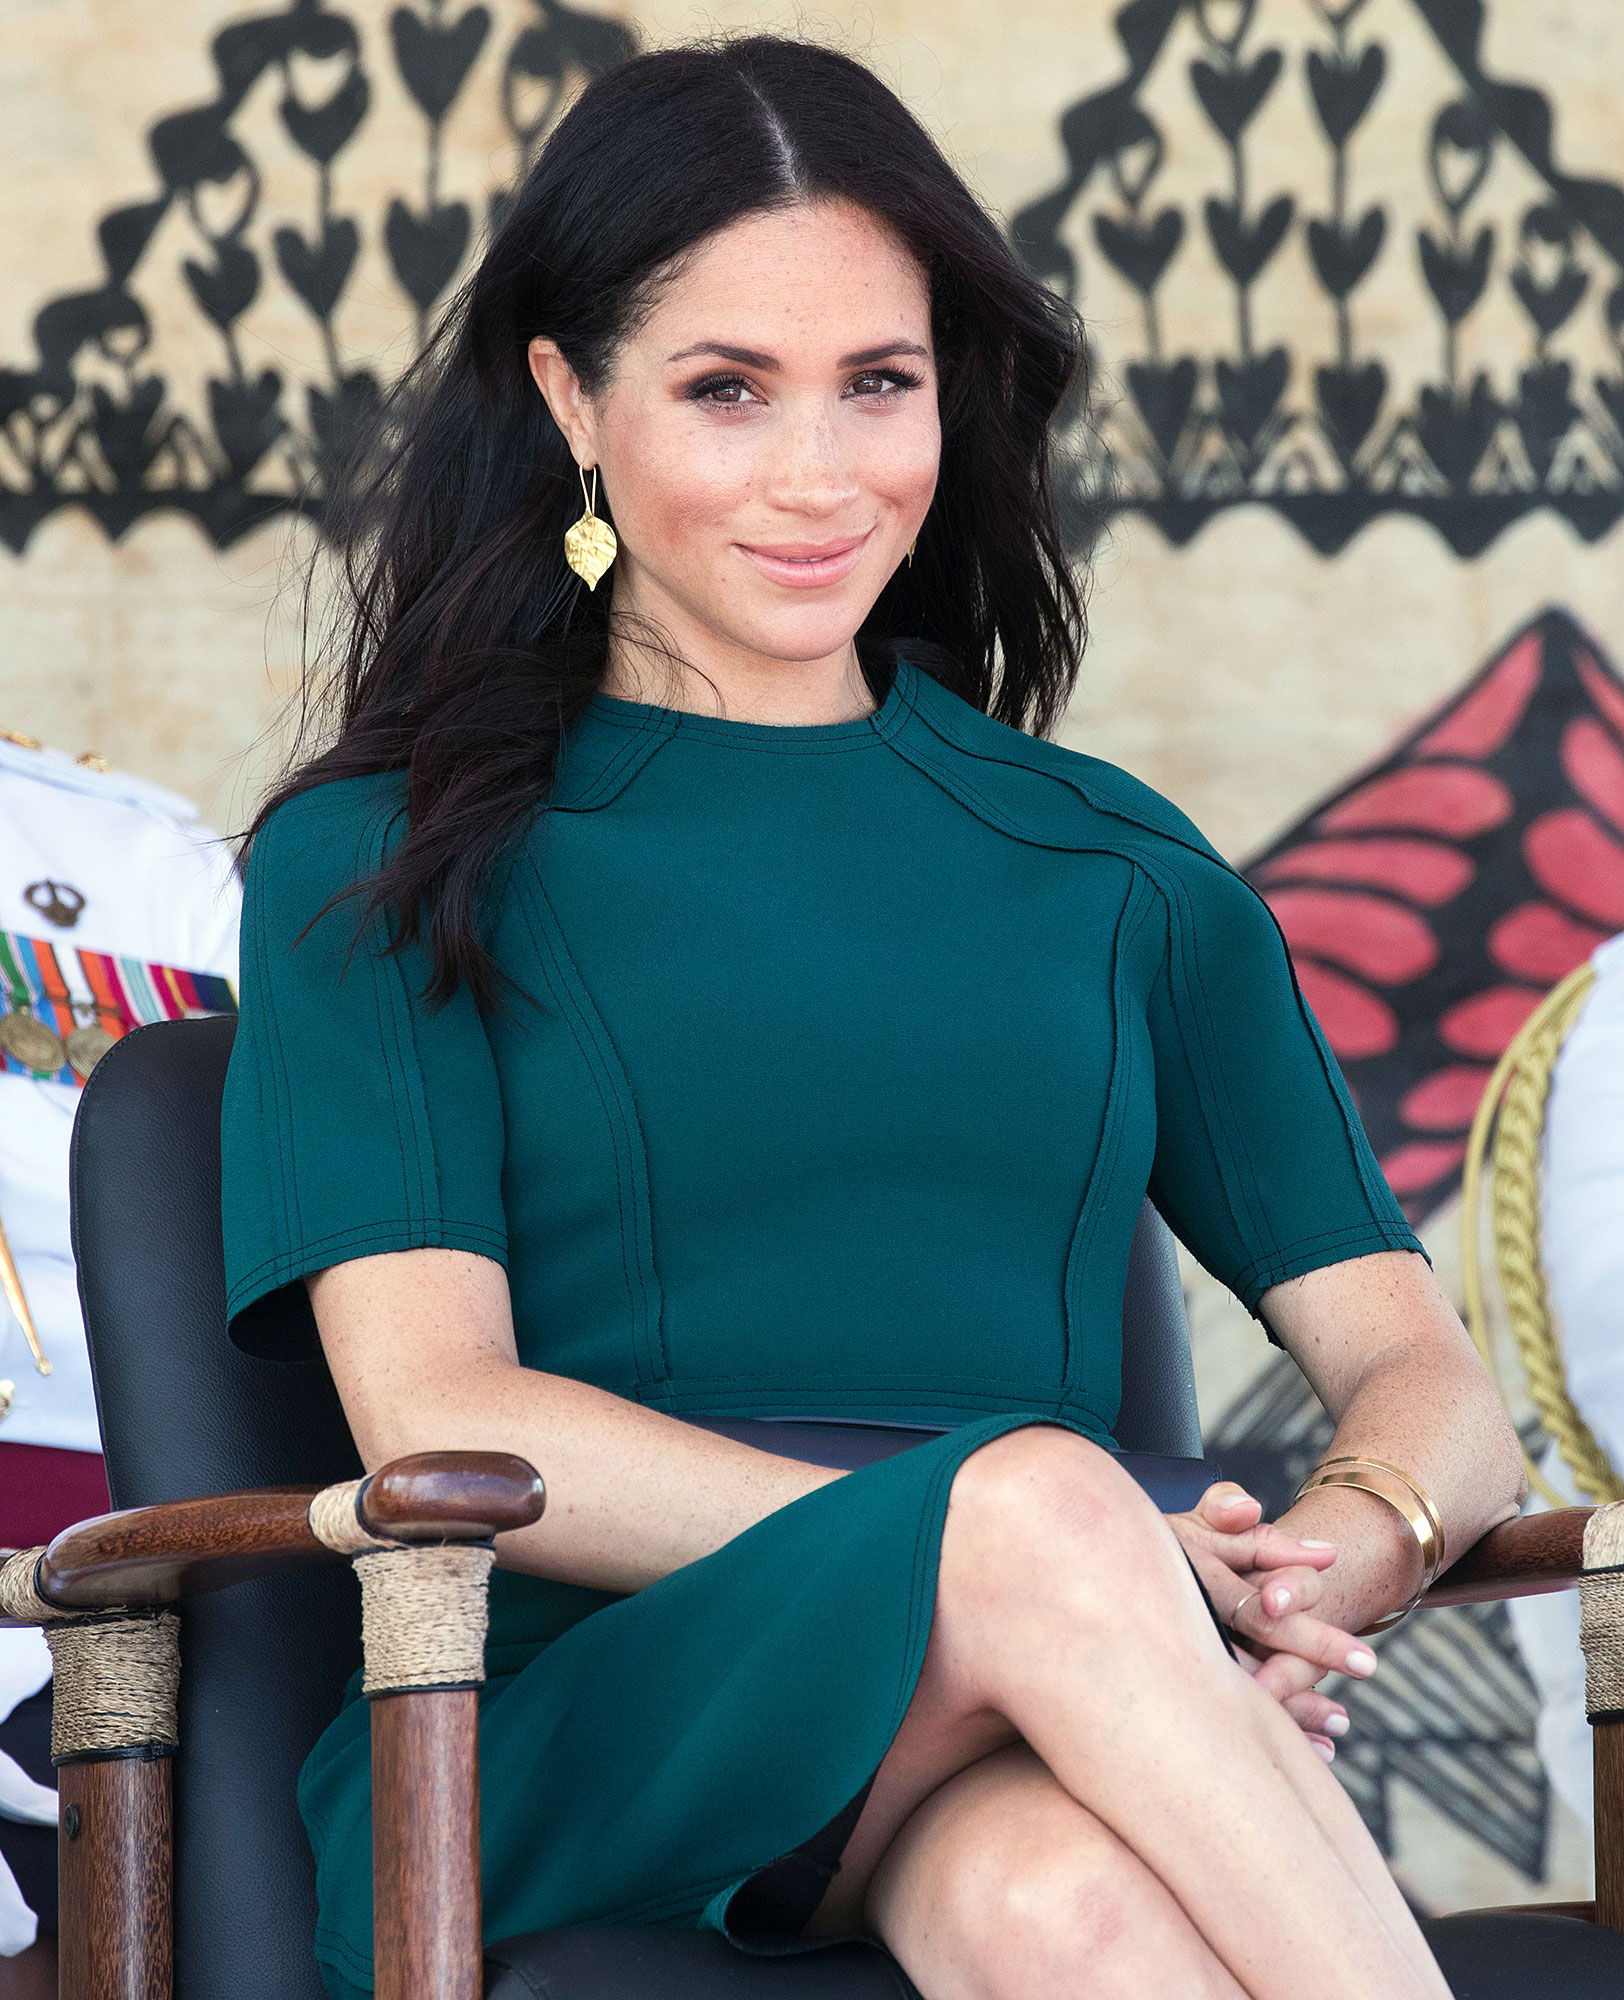 Meghan Markle's Last Words as a Member of the Royal Family Revealed